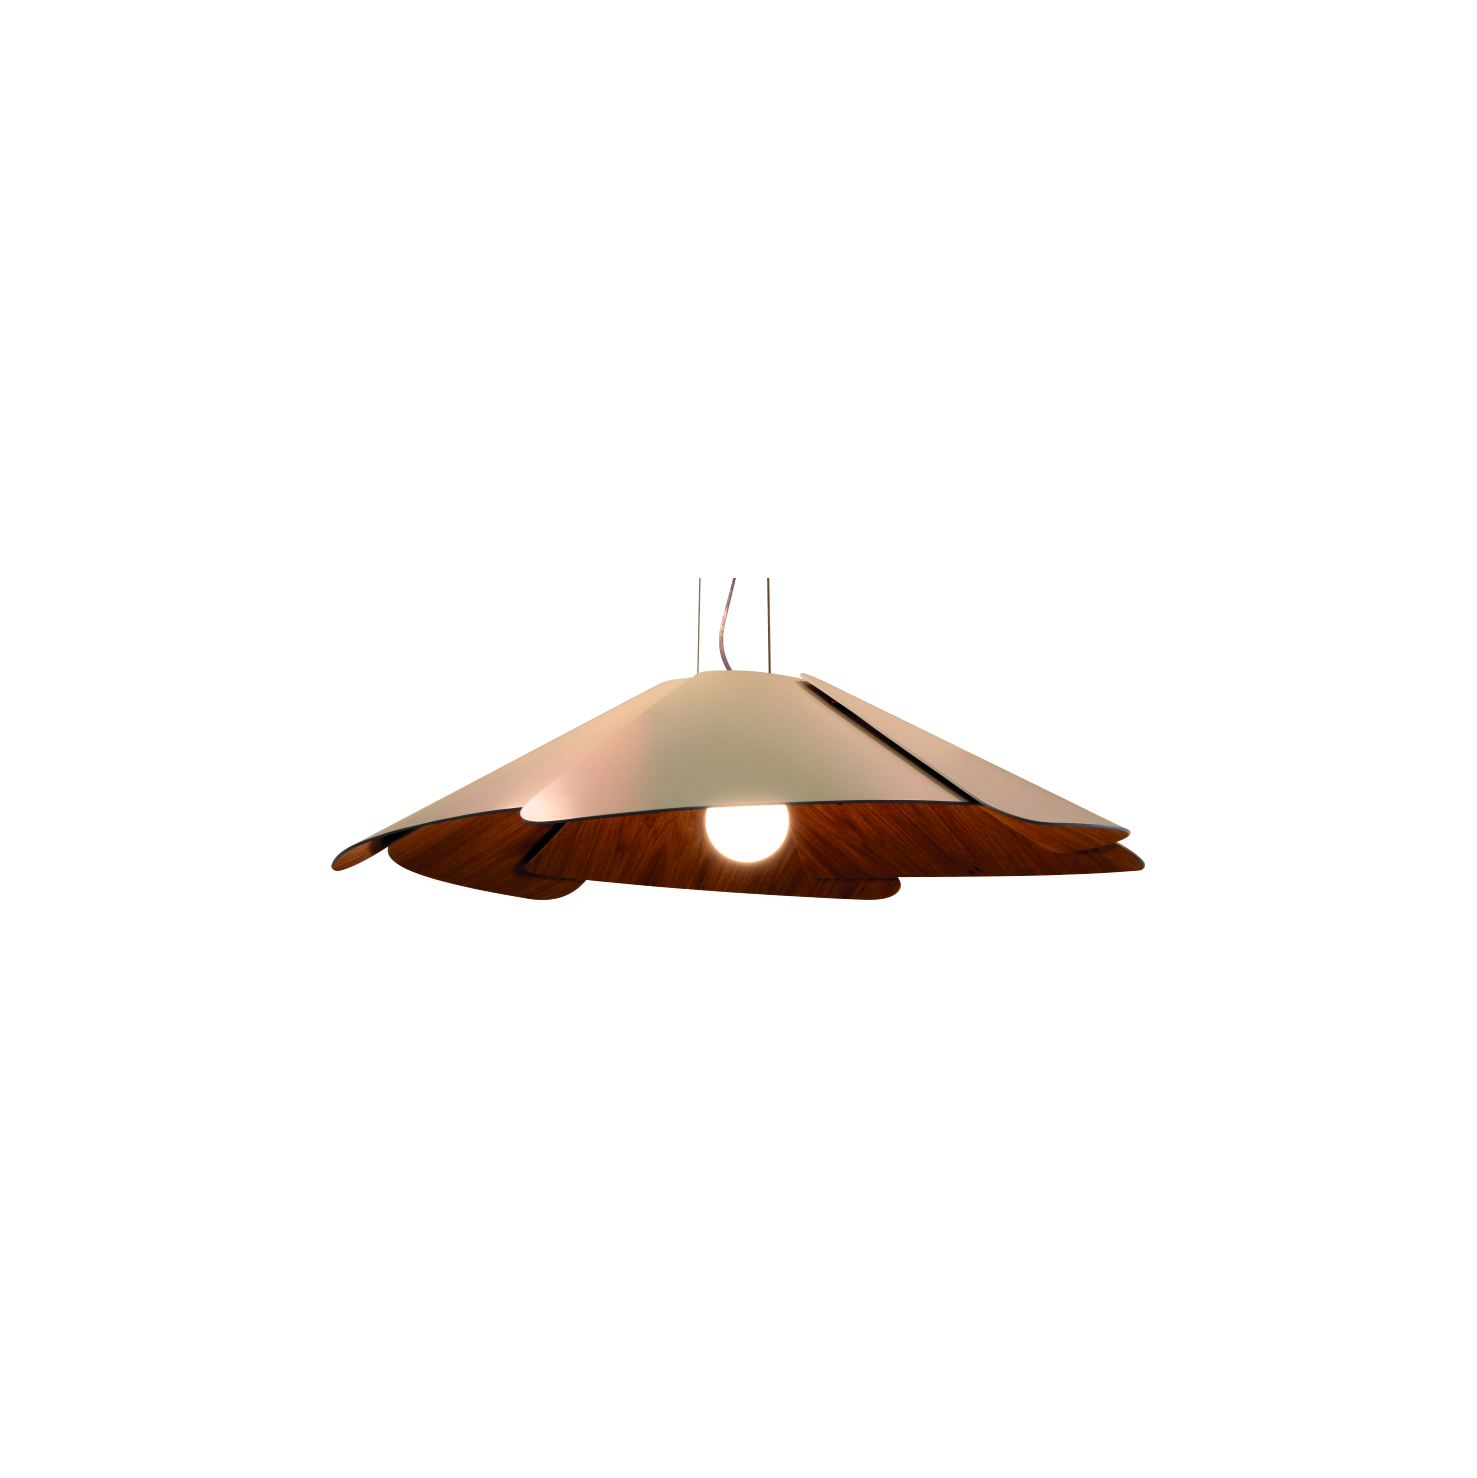 Pendant Lamp Accord Fuchsia 1365 - Fuchsia Line Accord Lighting